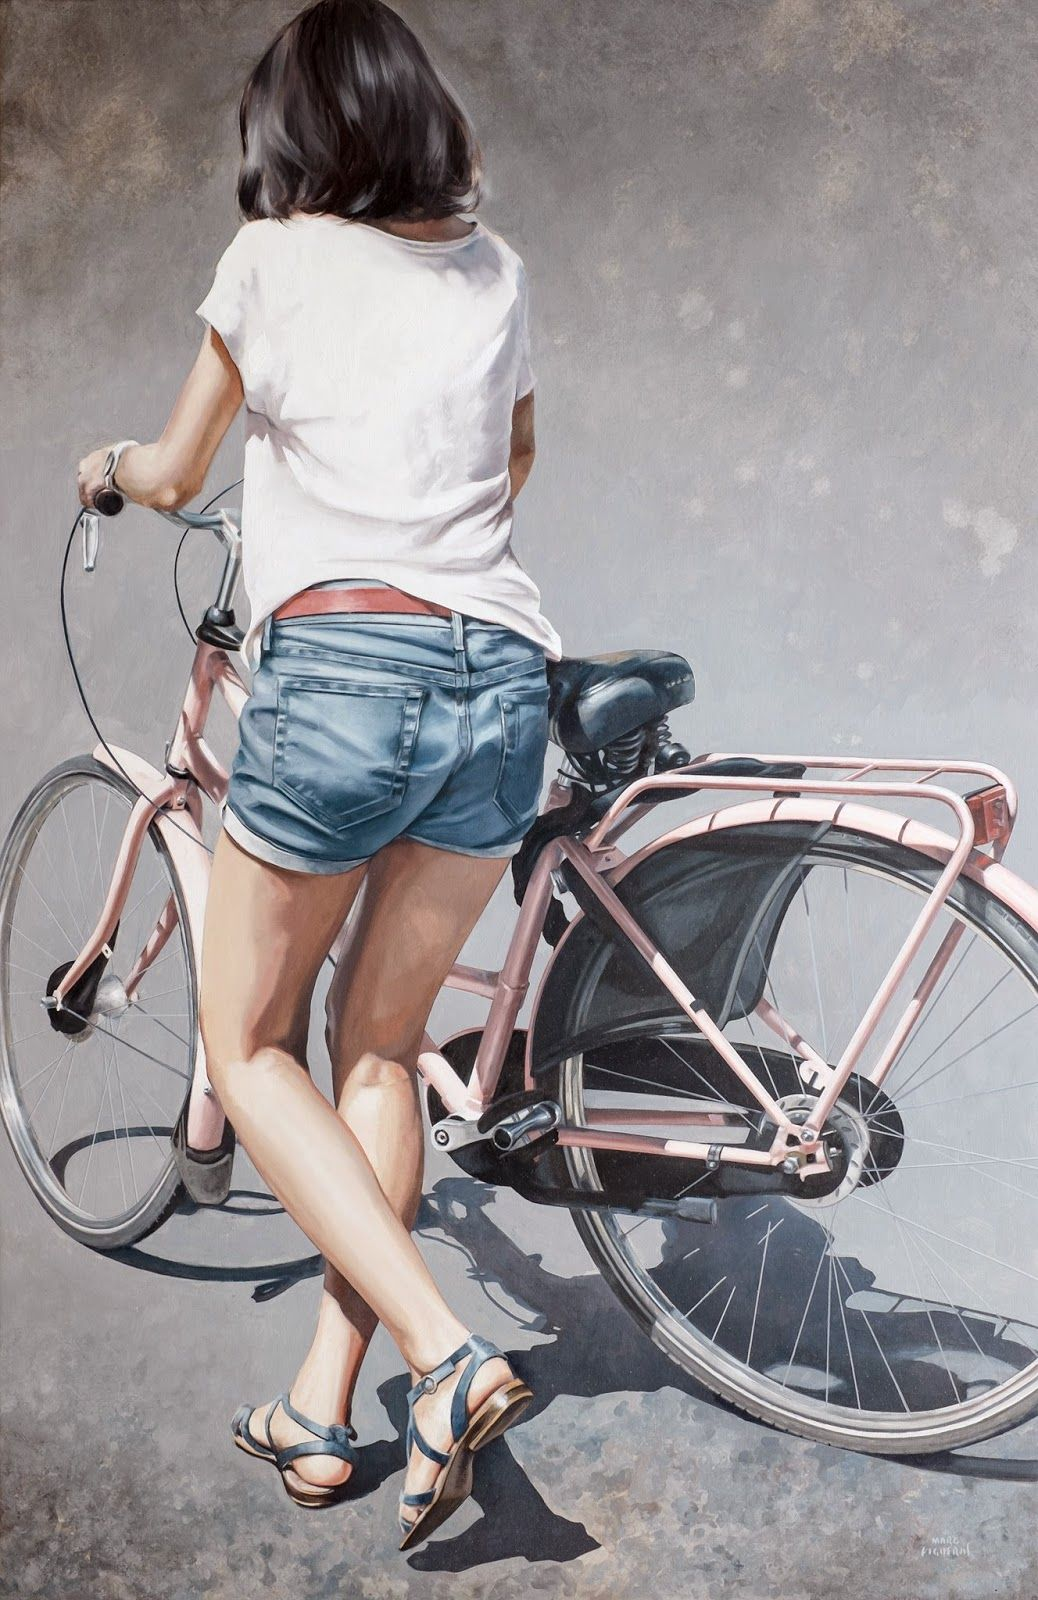 Hyper Realistic Girls Figure Painting By Marc Figueras 8